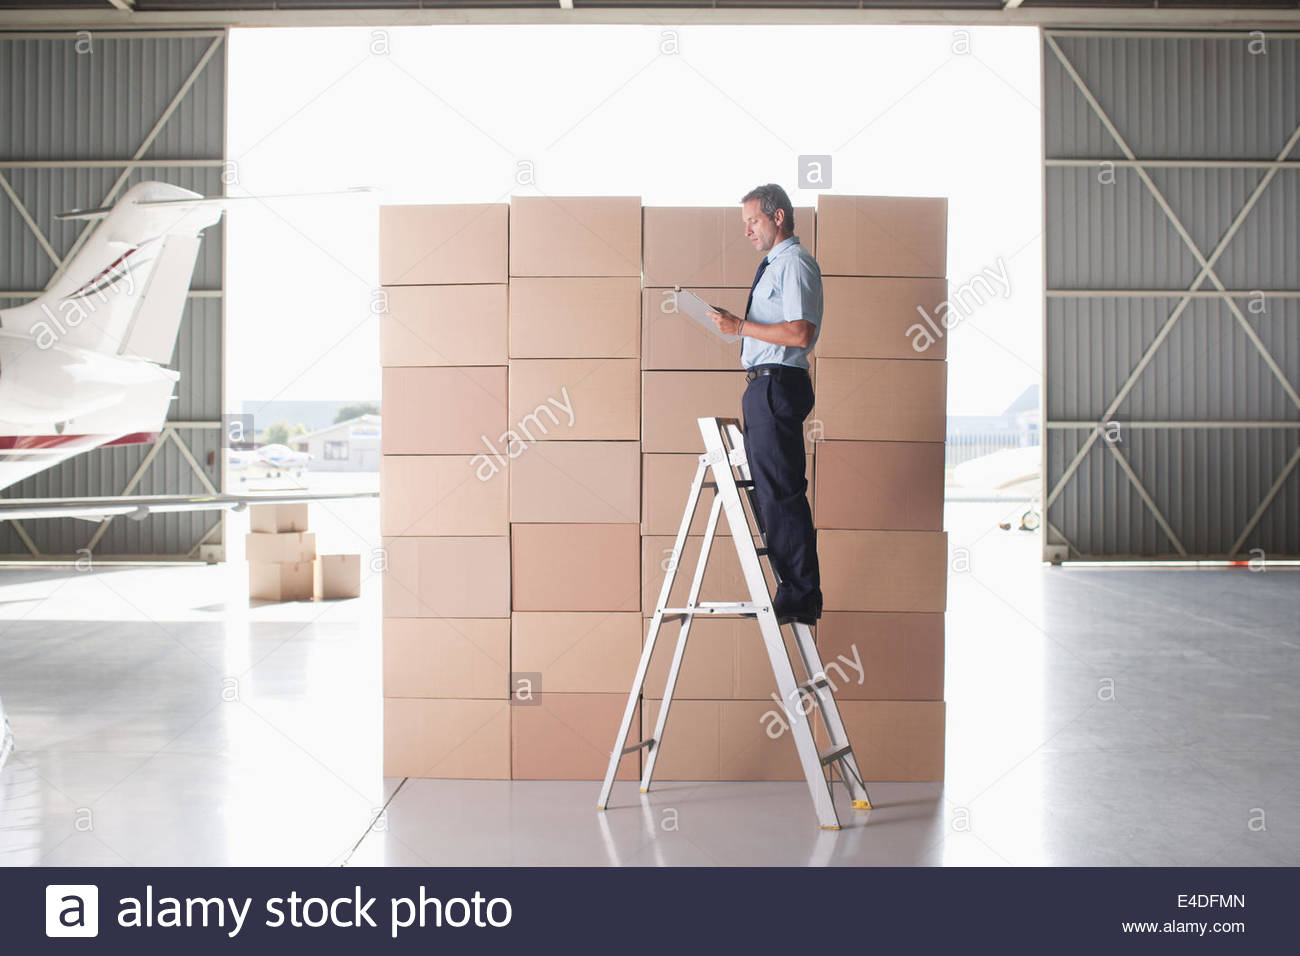 Worker stacking boxes in hangar Stock Photo